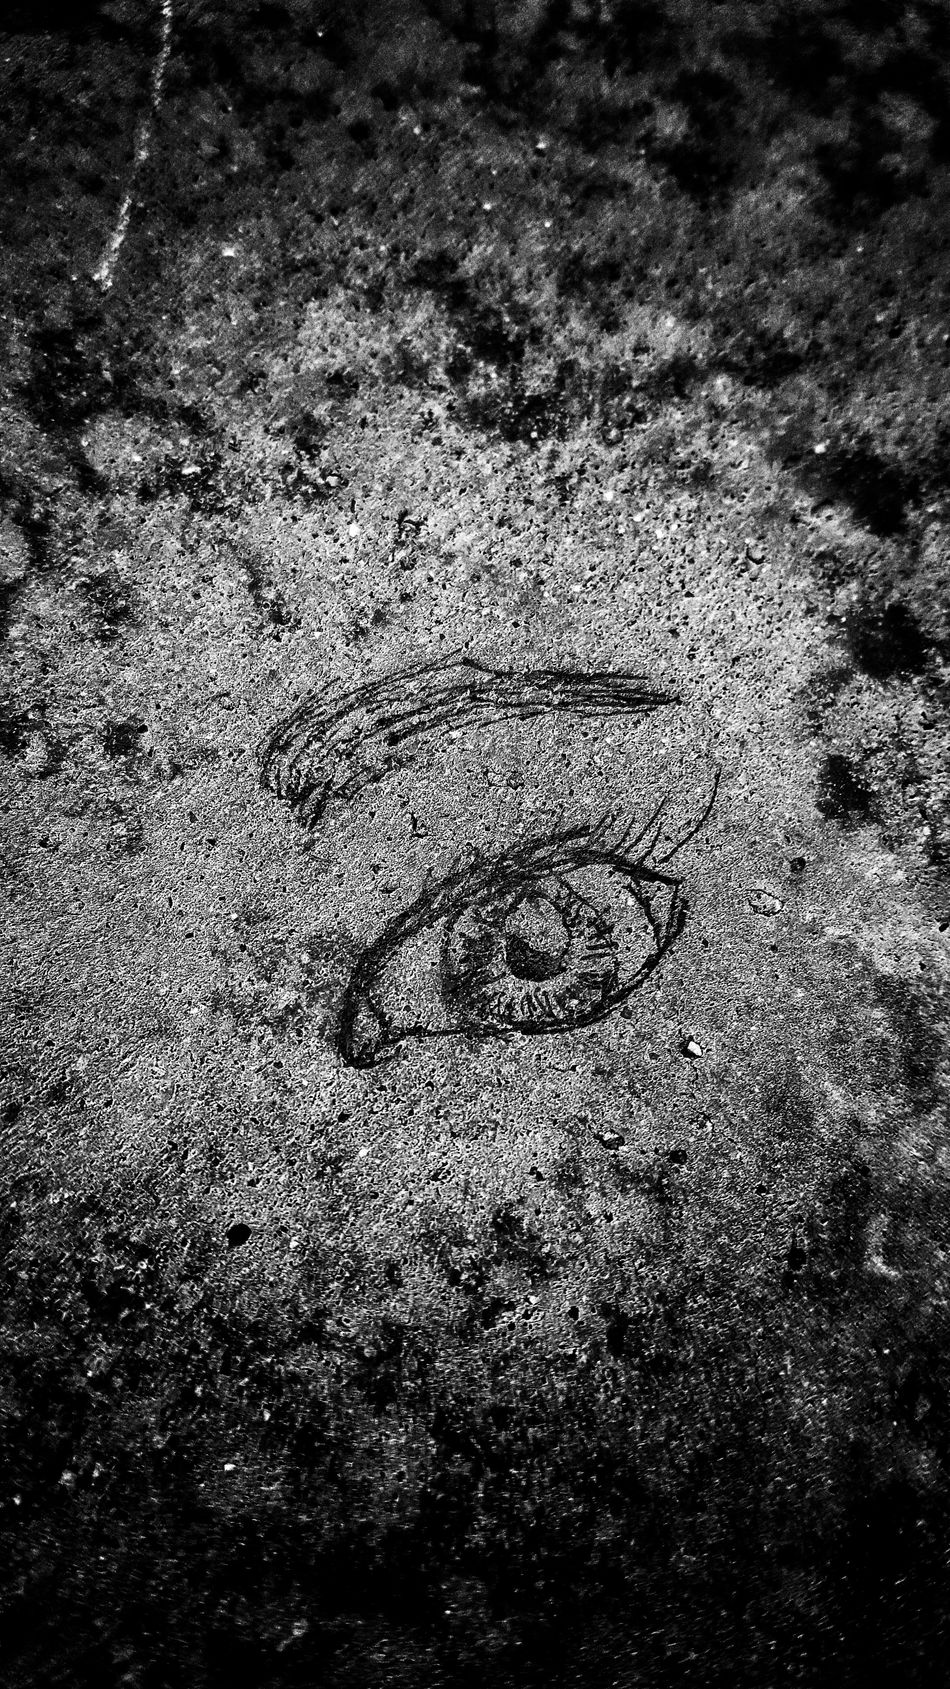 No People Abstract Close-up Day Eye Drawing Scetch Bench Concrete School Pencil ArtWork Art Draw Pencil Drawing Pencil Sketch  EyeEmNewHere Afterschool  Backgrounds Textured  EyeEmNewHere EyeEmNewHere Welcome To Black